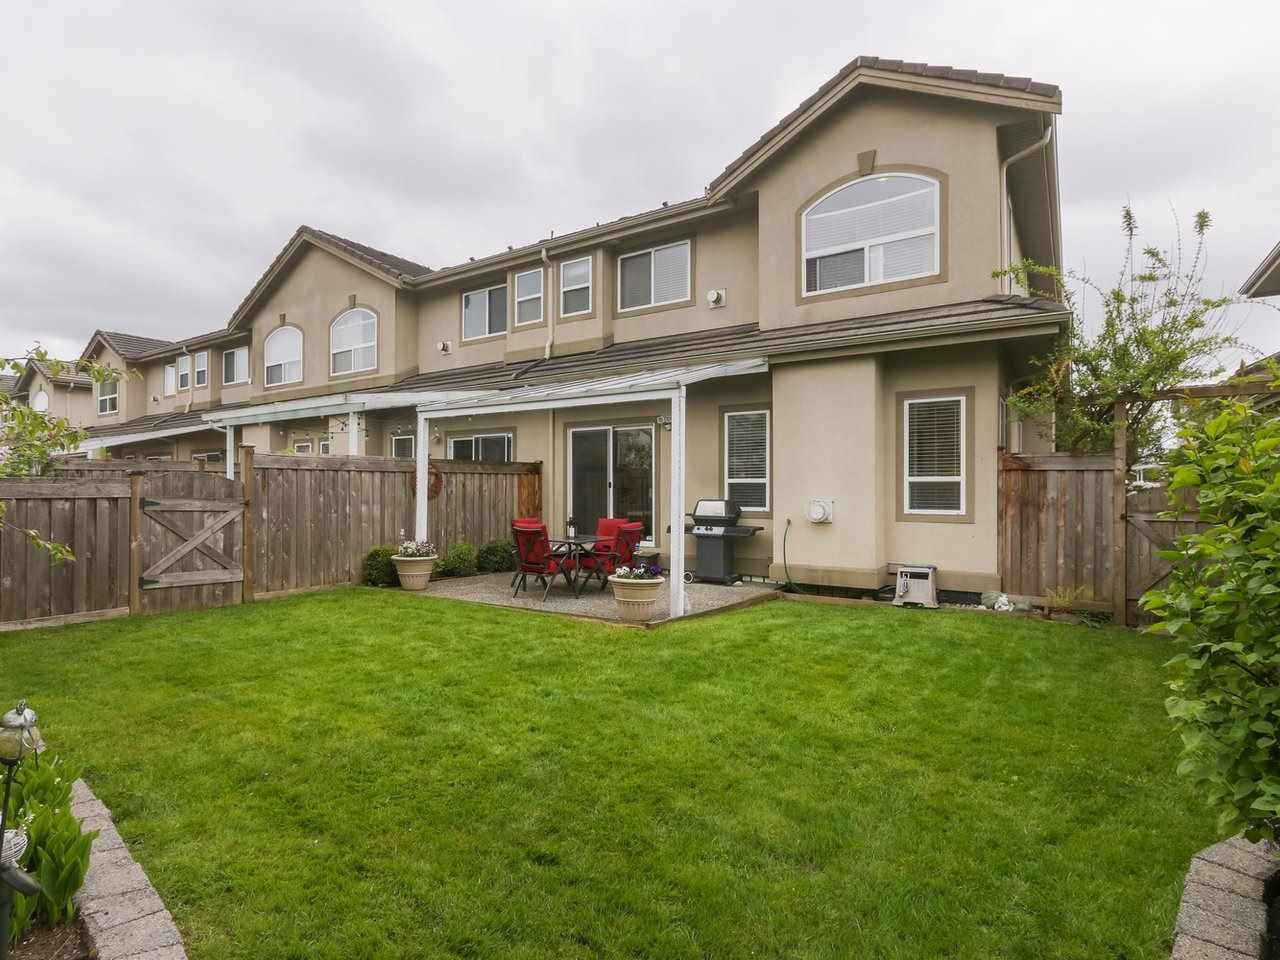 """Photo 20: Photos: 21 998 RIVERSIDE Drive in Port Coquitlam: Riverwood Townhouse for sale in """"PARKSIDE PLACE"""" : MLS®# R2371728"""